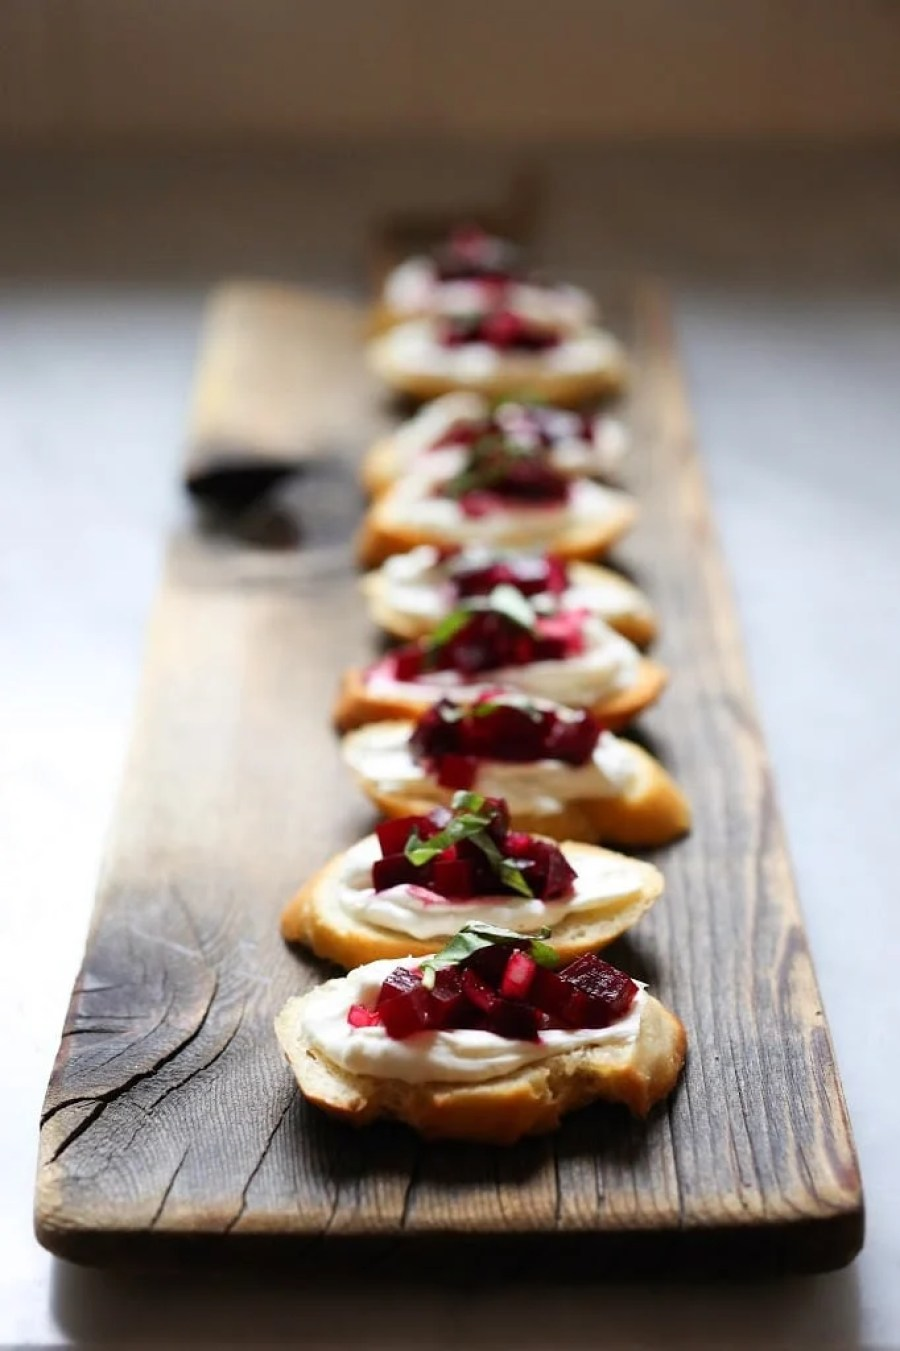 Beet and Basil Bruschetta with Goat Cheese + 15 delicious Thanksgiving SIDE DISHES that will turn your dinner into a feast! | www.feastingathome.com